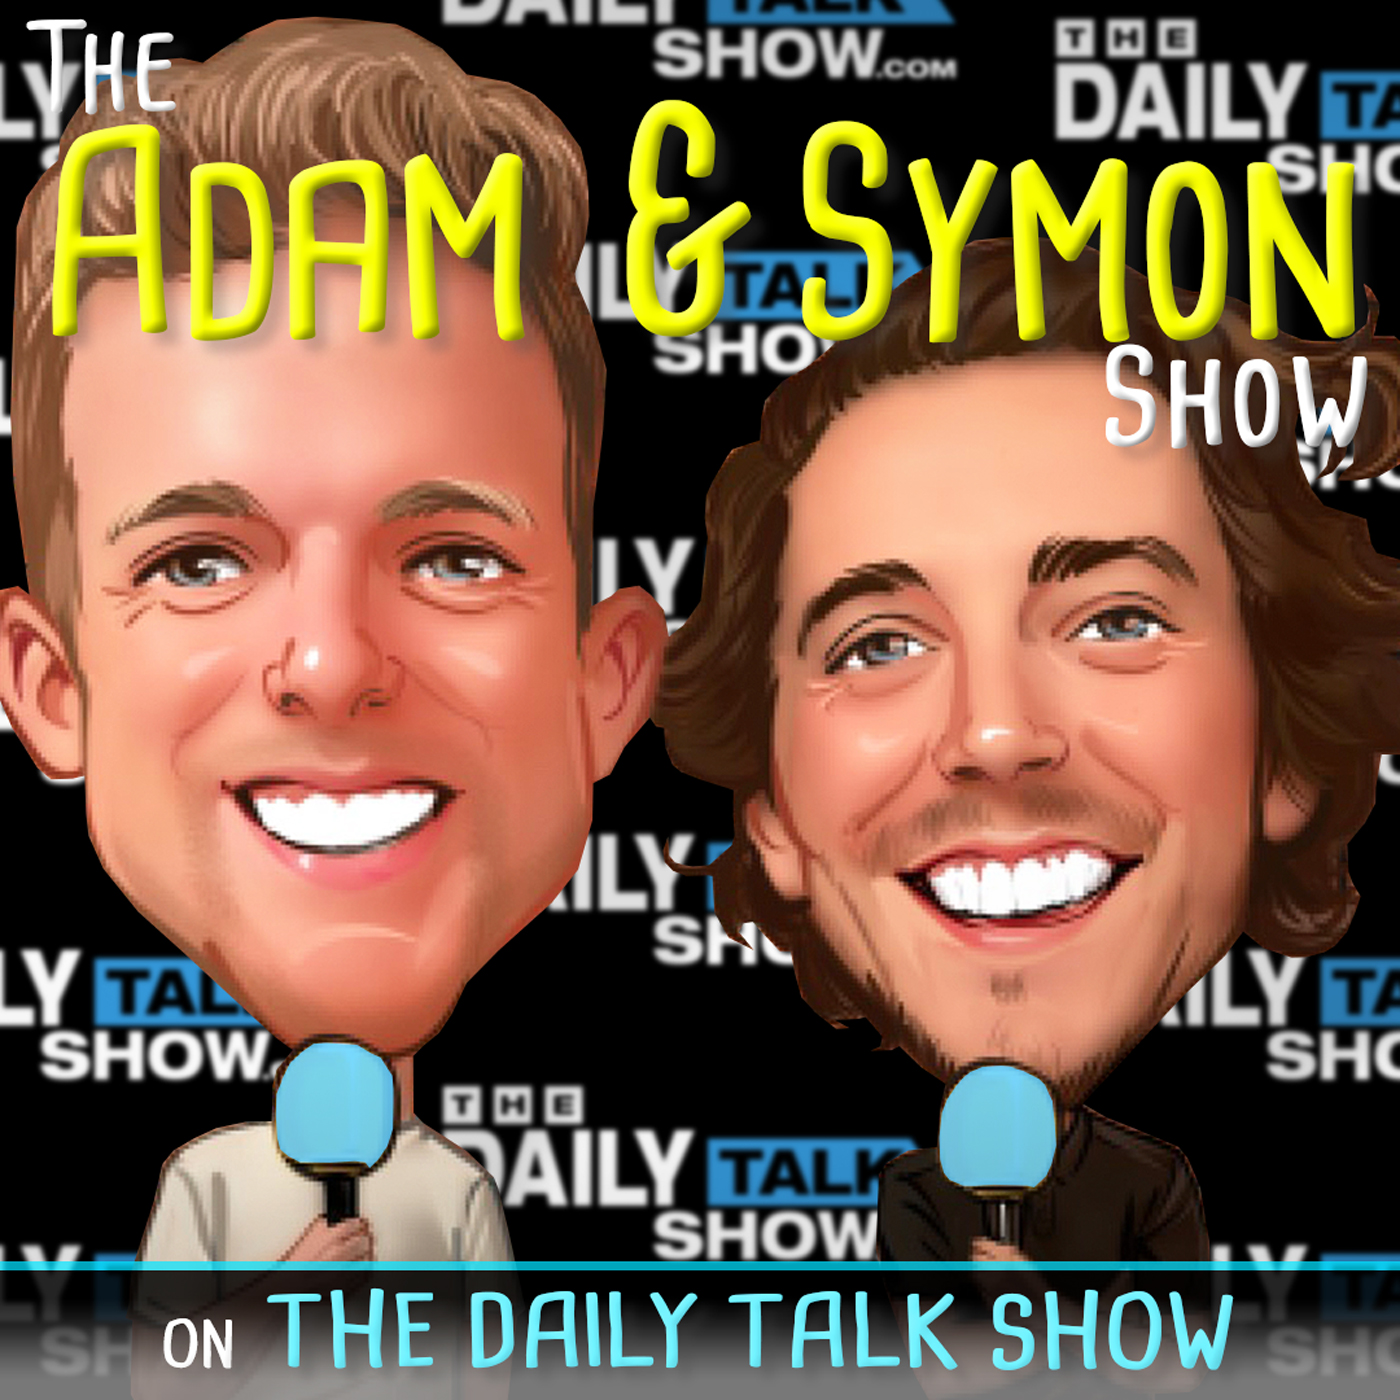 Day 7 -The Daily Talk Show #525